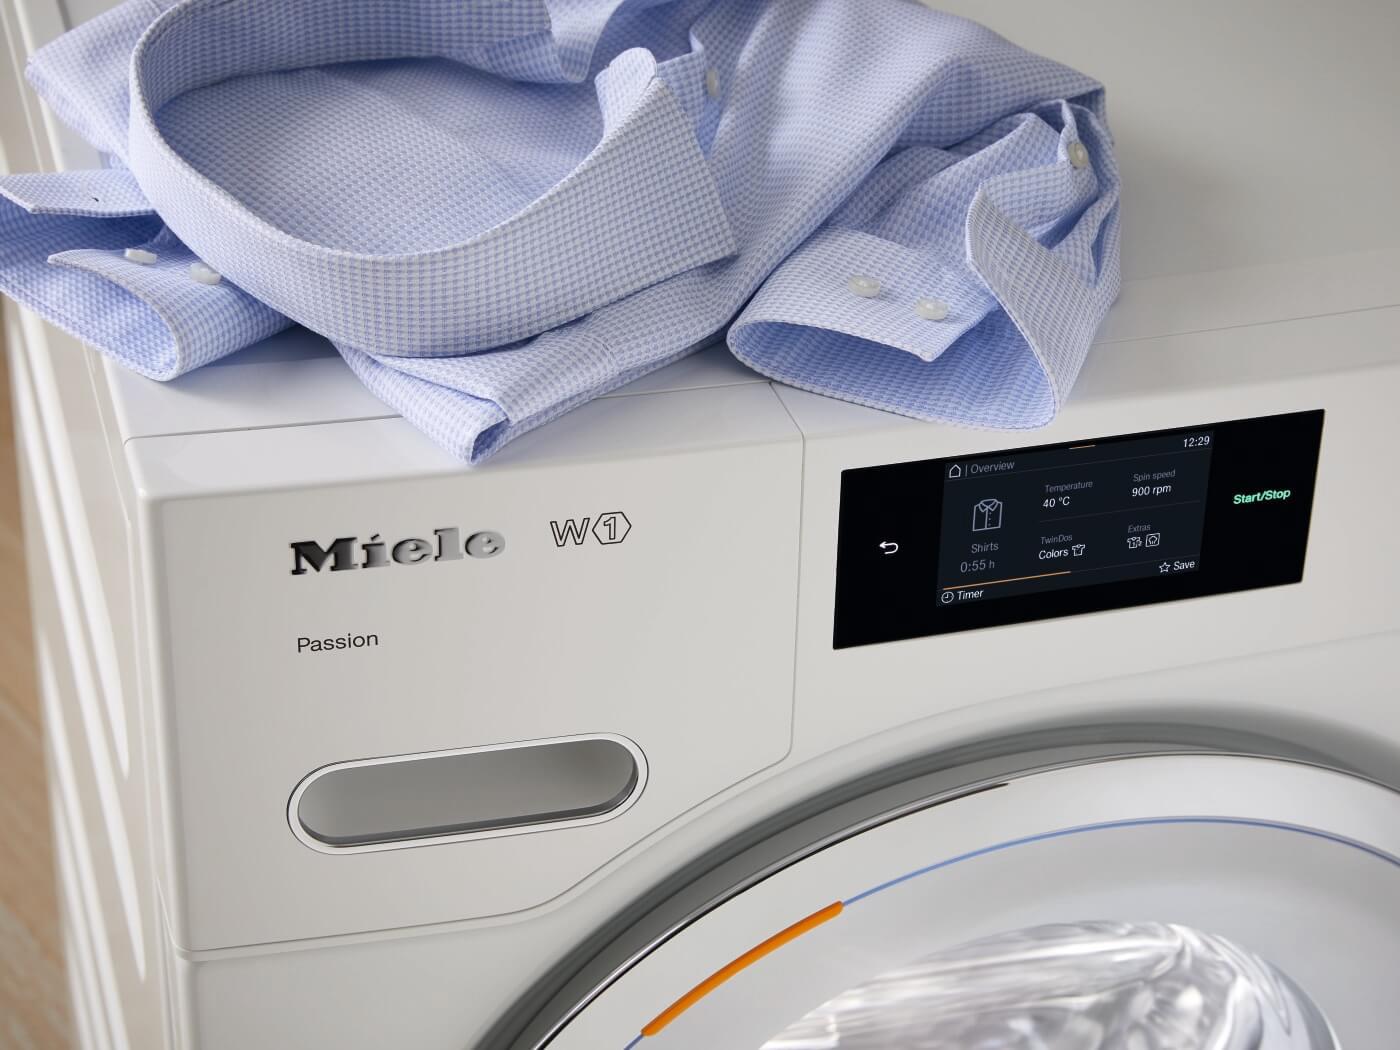 Miele Neuheiten 2018 : miele washer and dryer everything you need to know review ~ Aude.kayakingforconservation.com Haus und Dekorationen